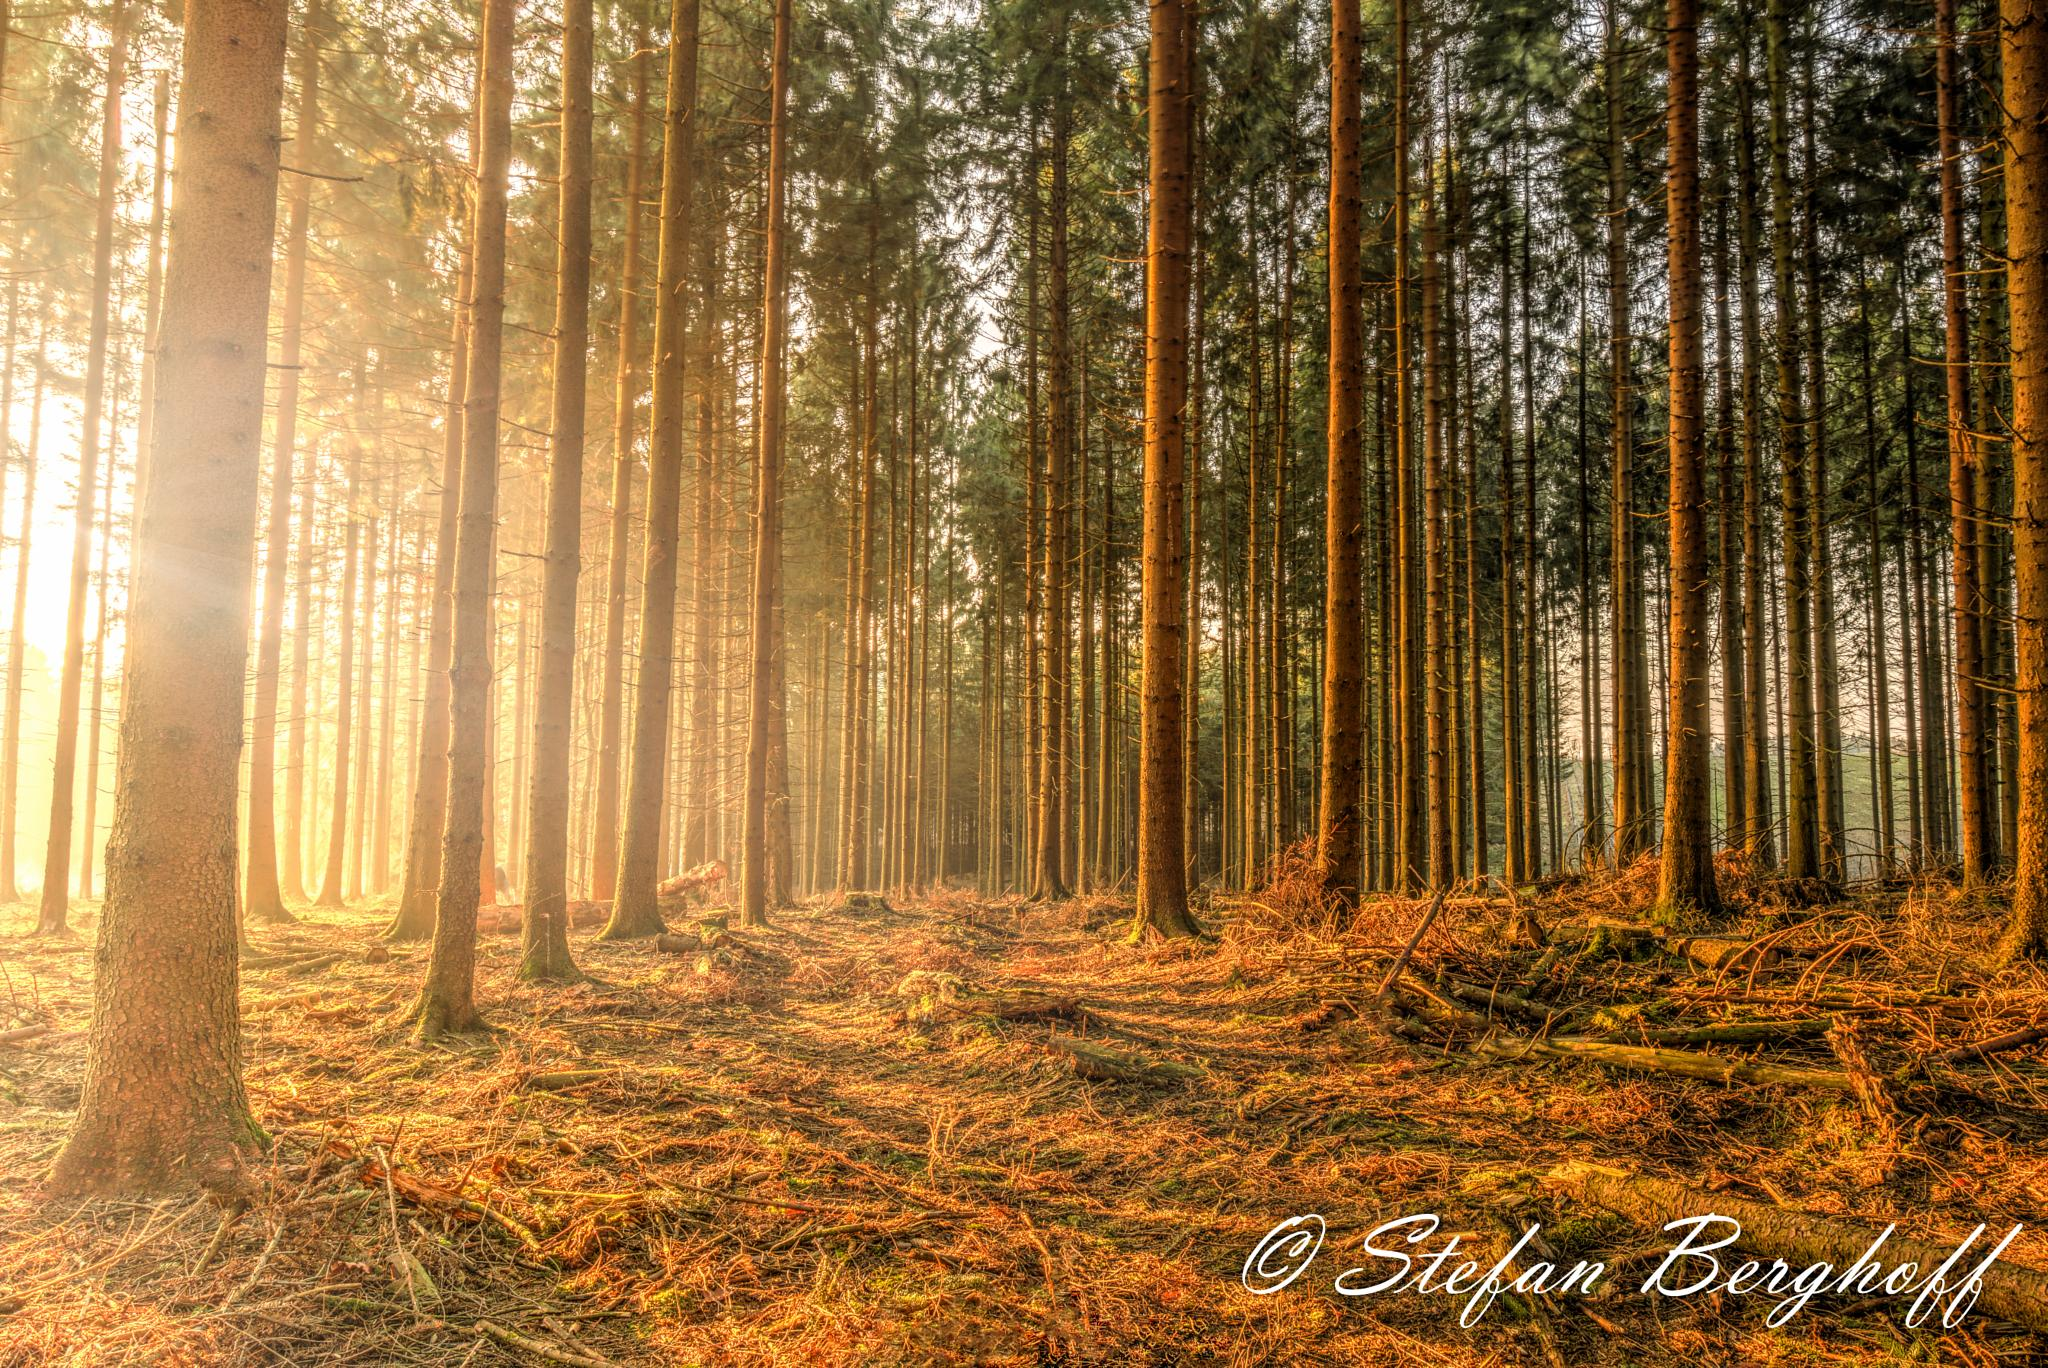 Im the Forest by Stefan Berghoff